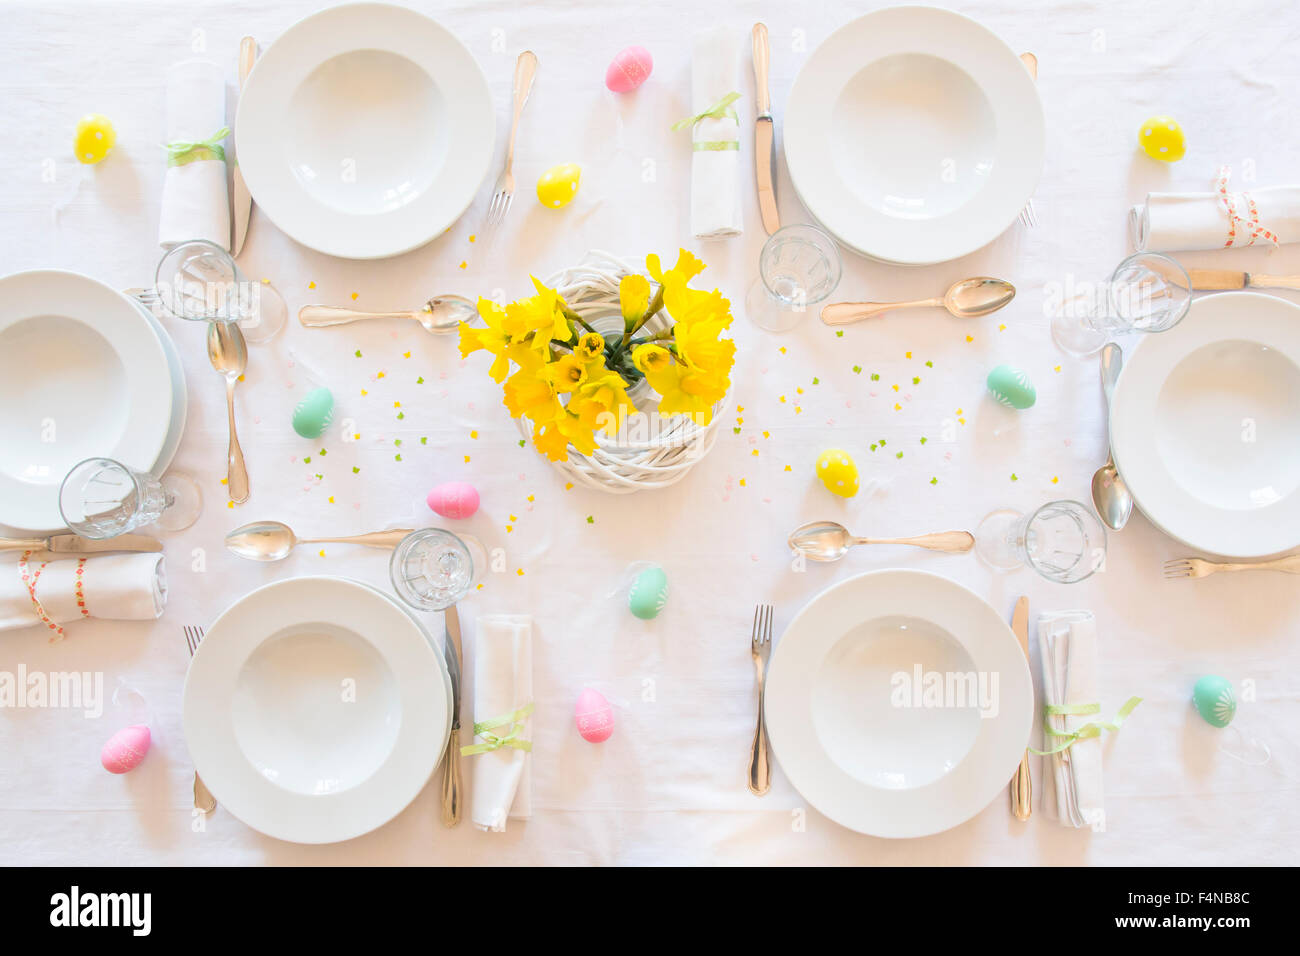 Laid Easter table with bunch of daffodils - Stock Image